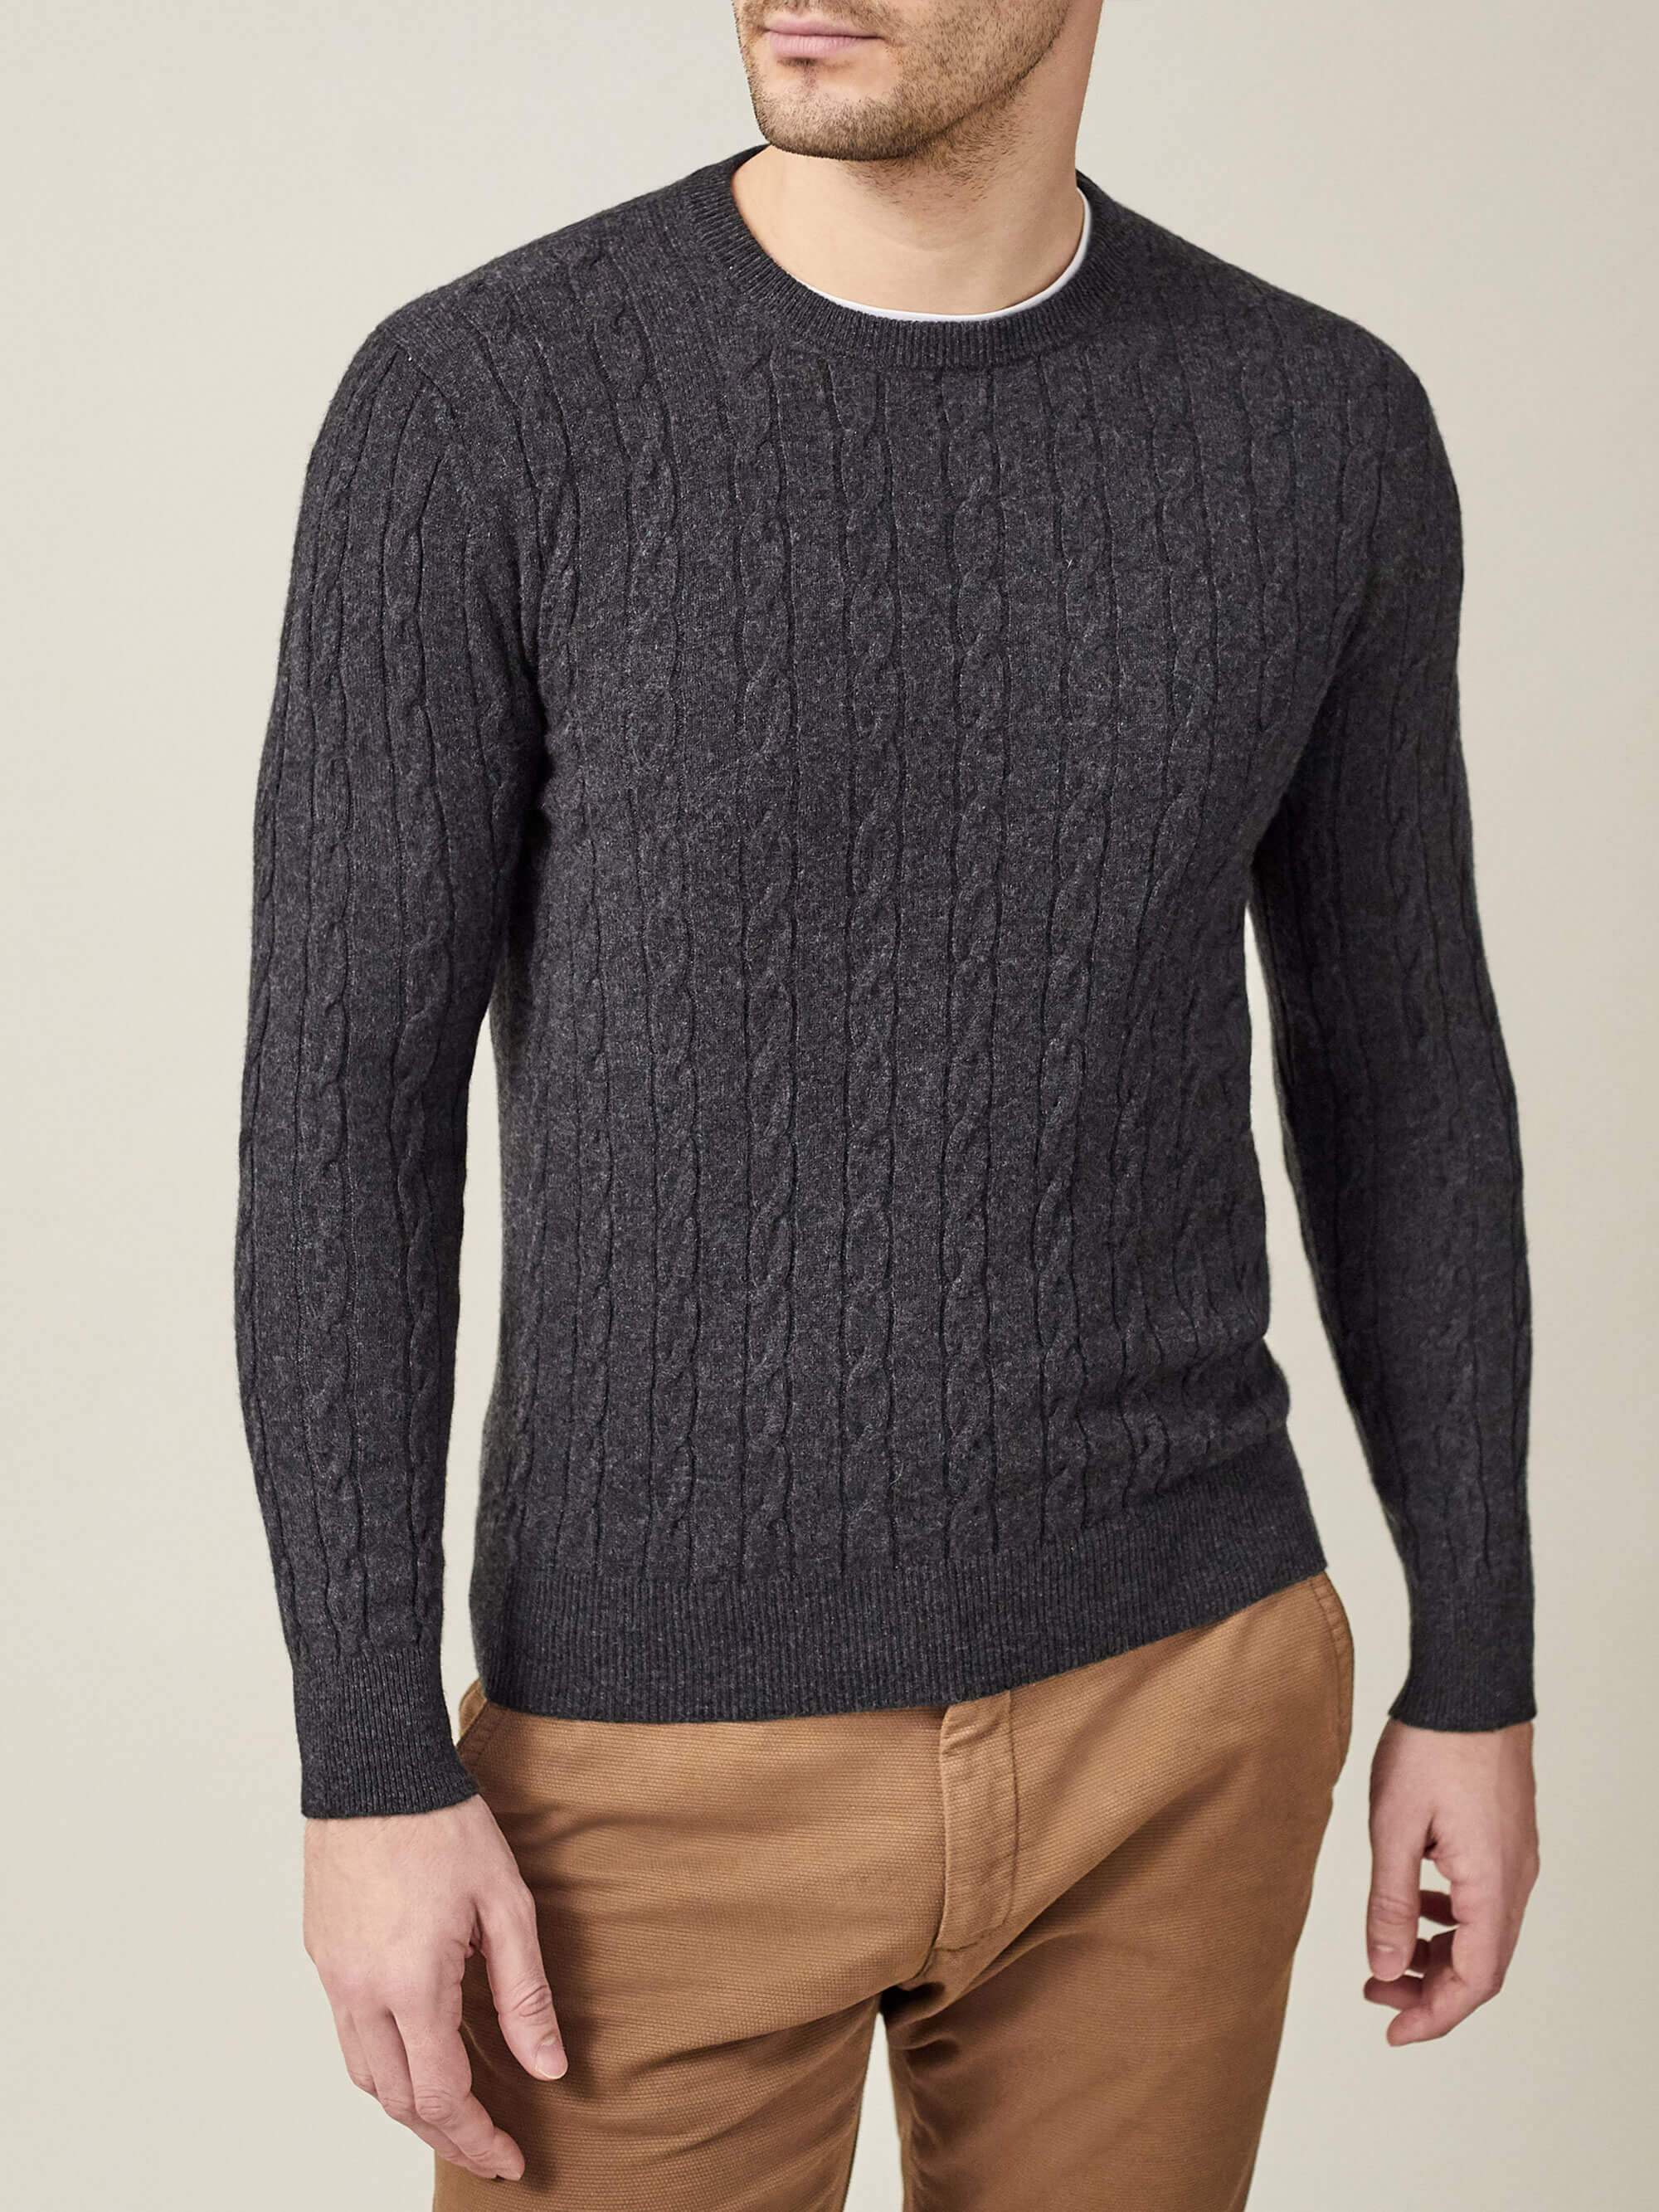 Luca Faloni Charcoal Grey Pure Cashmere Cable Knit Made in Italy